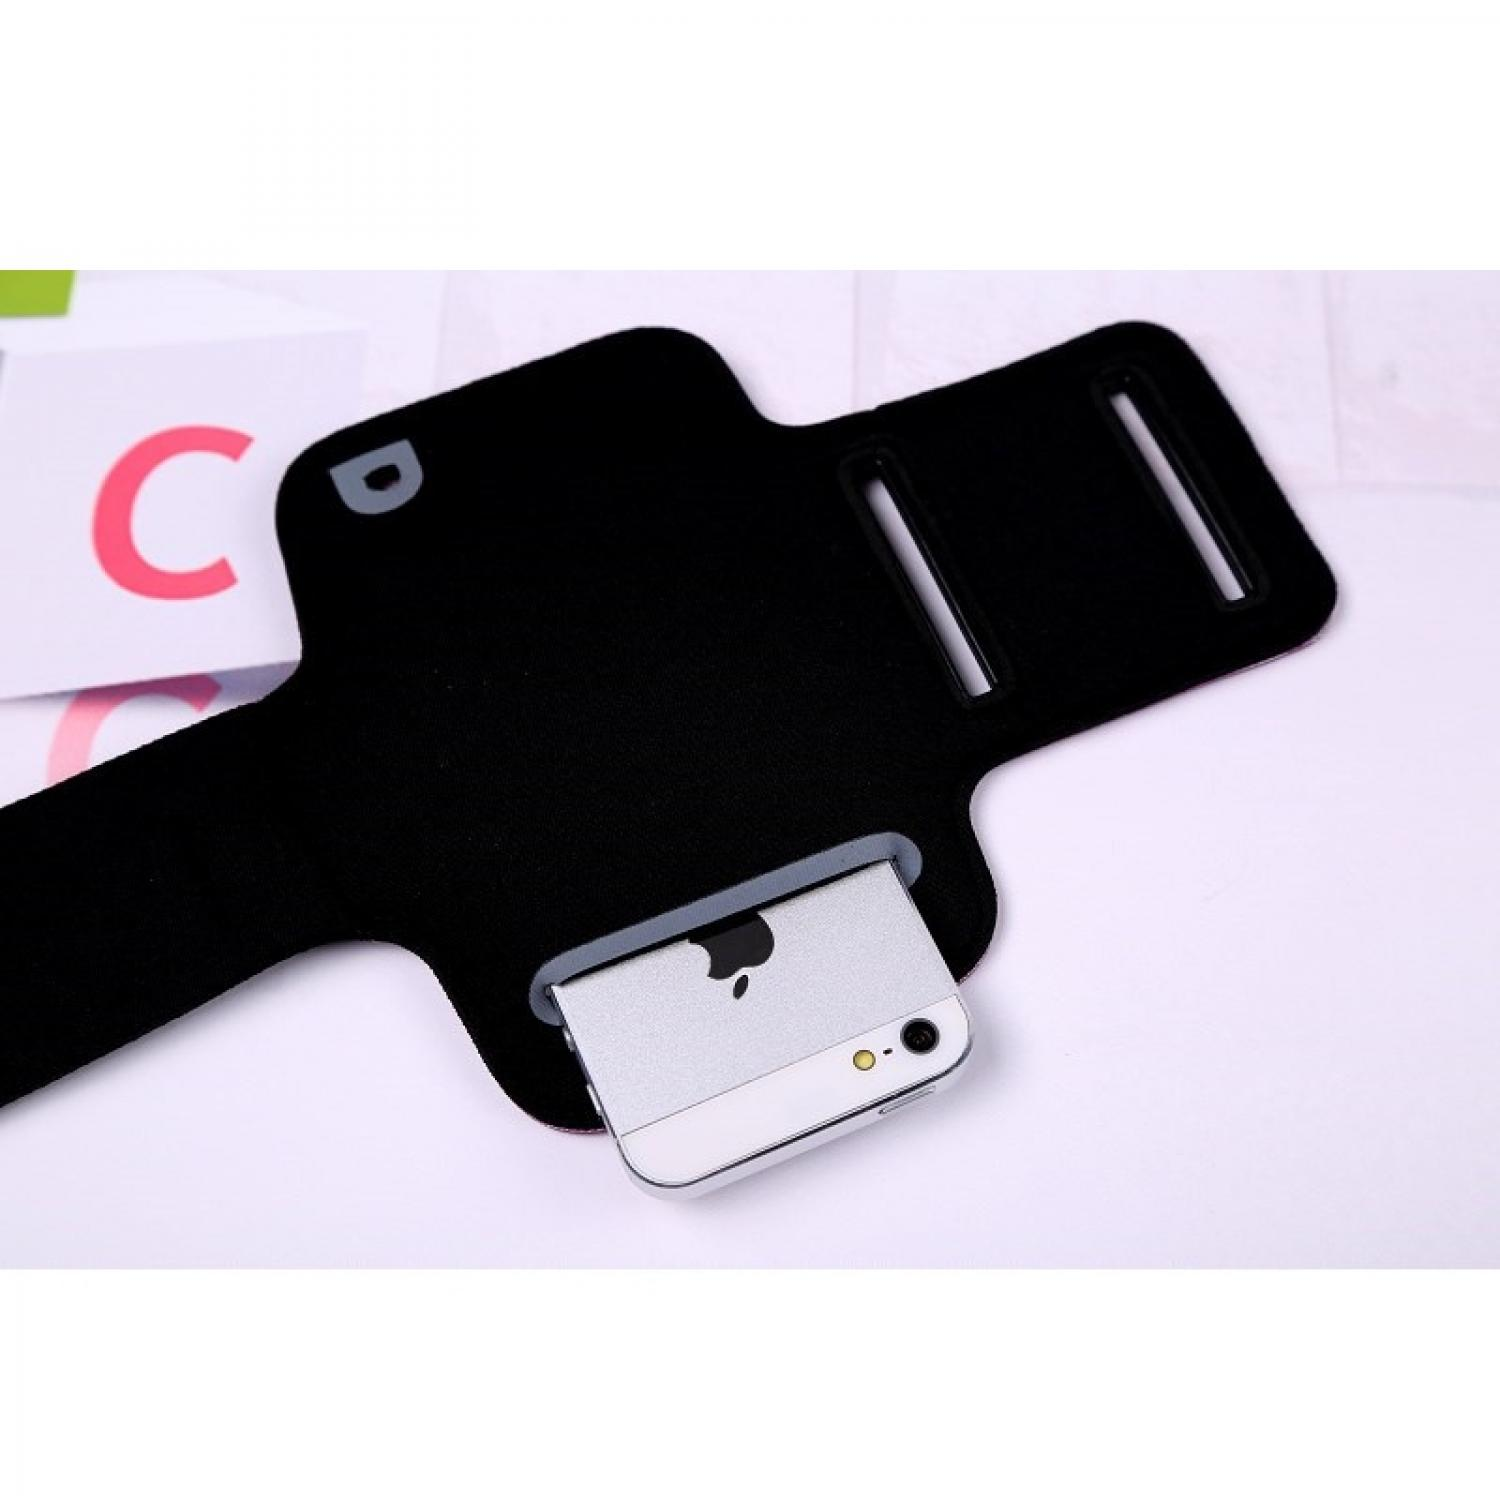 Neoprene Material Sports Armband Case with Key Storage for Smartphone